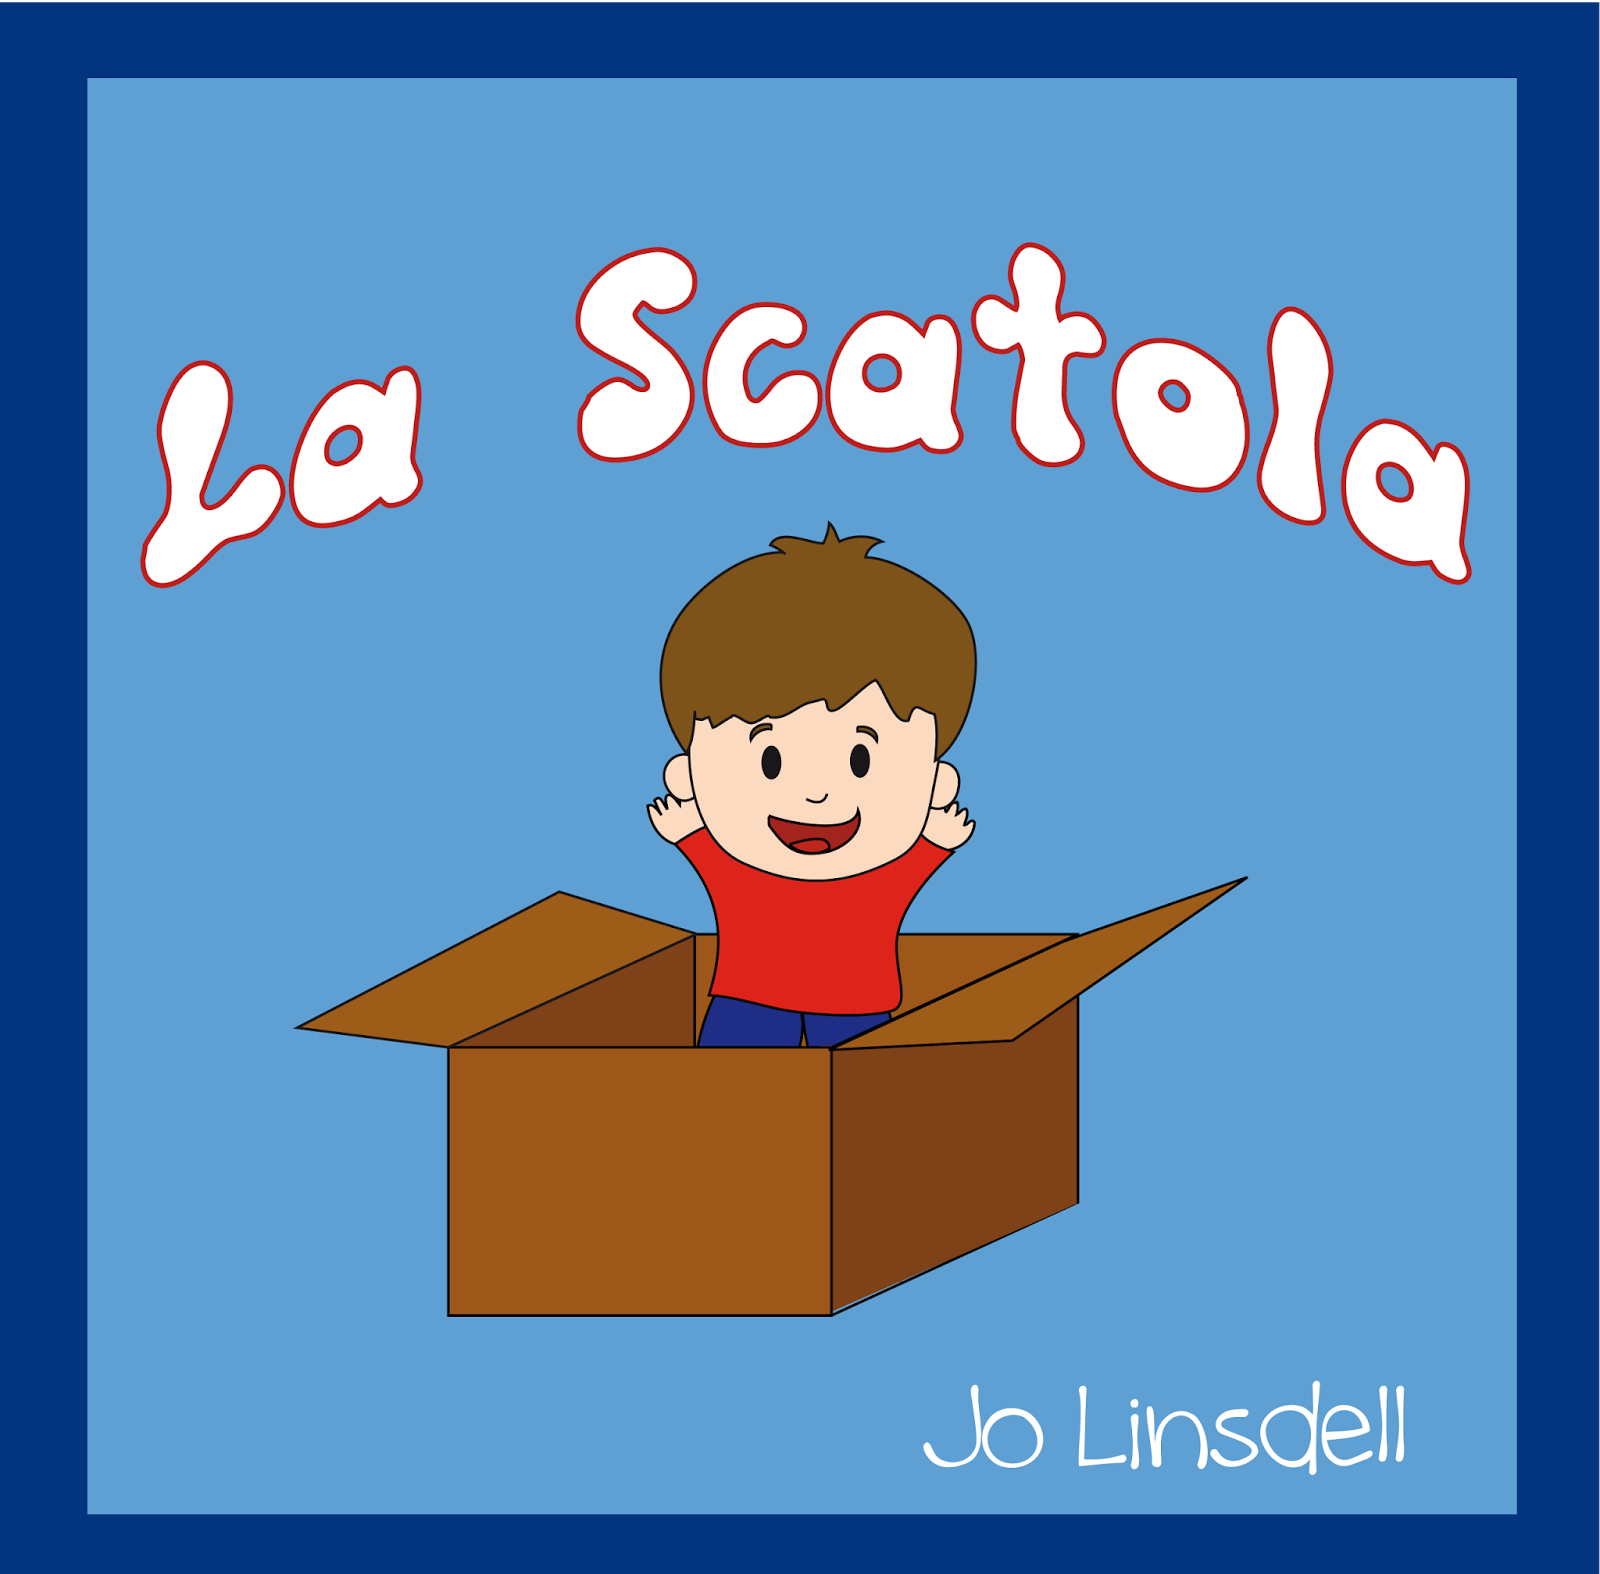 Book cover, La Scatola by Jo Linsdell